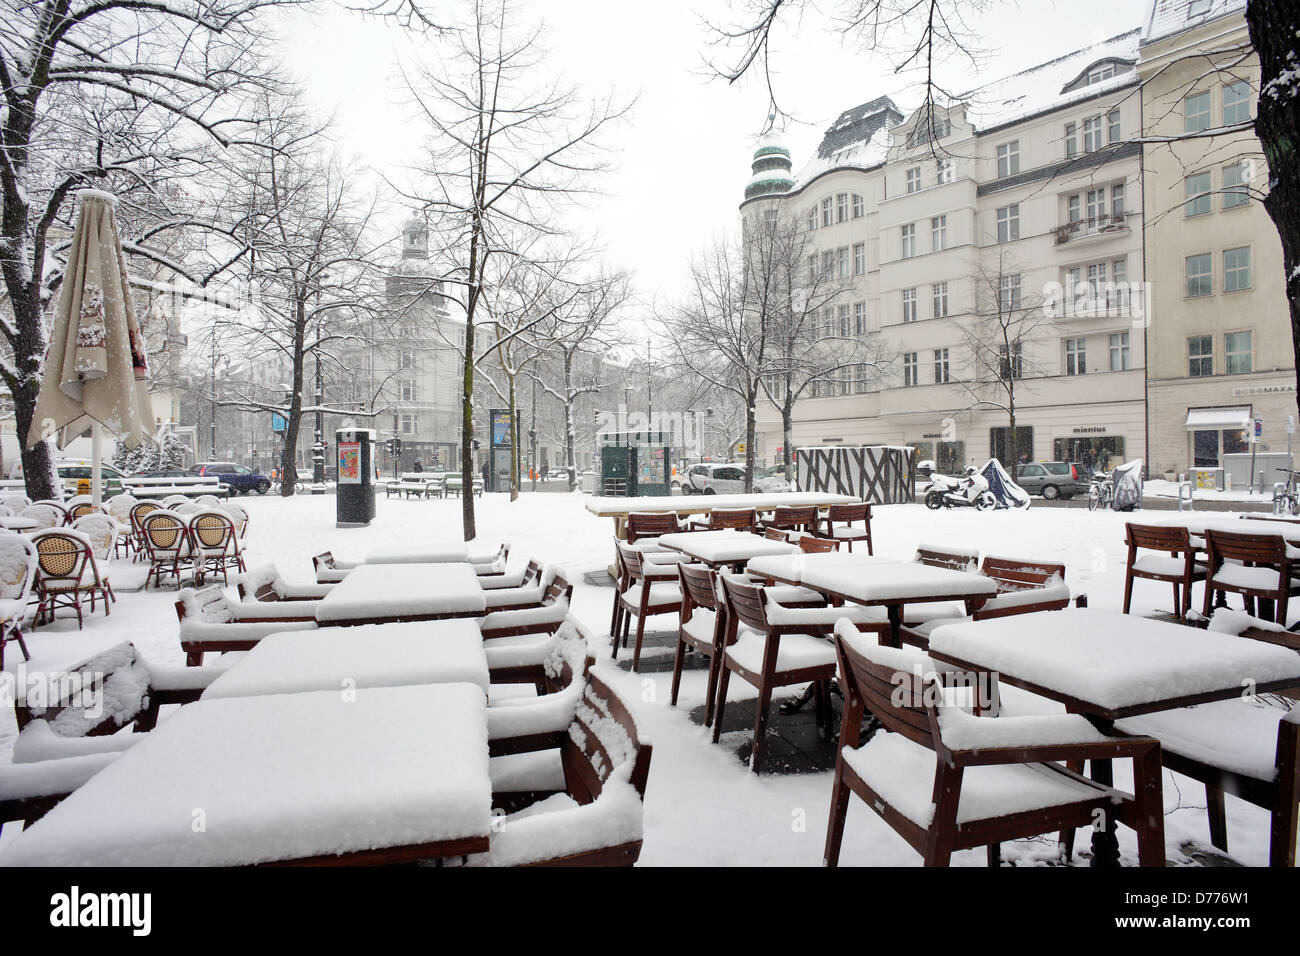 Berlin, Germany, snowed-in furniture of a street cafes on the Place George Grosz - Stock Image